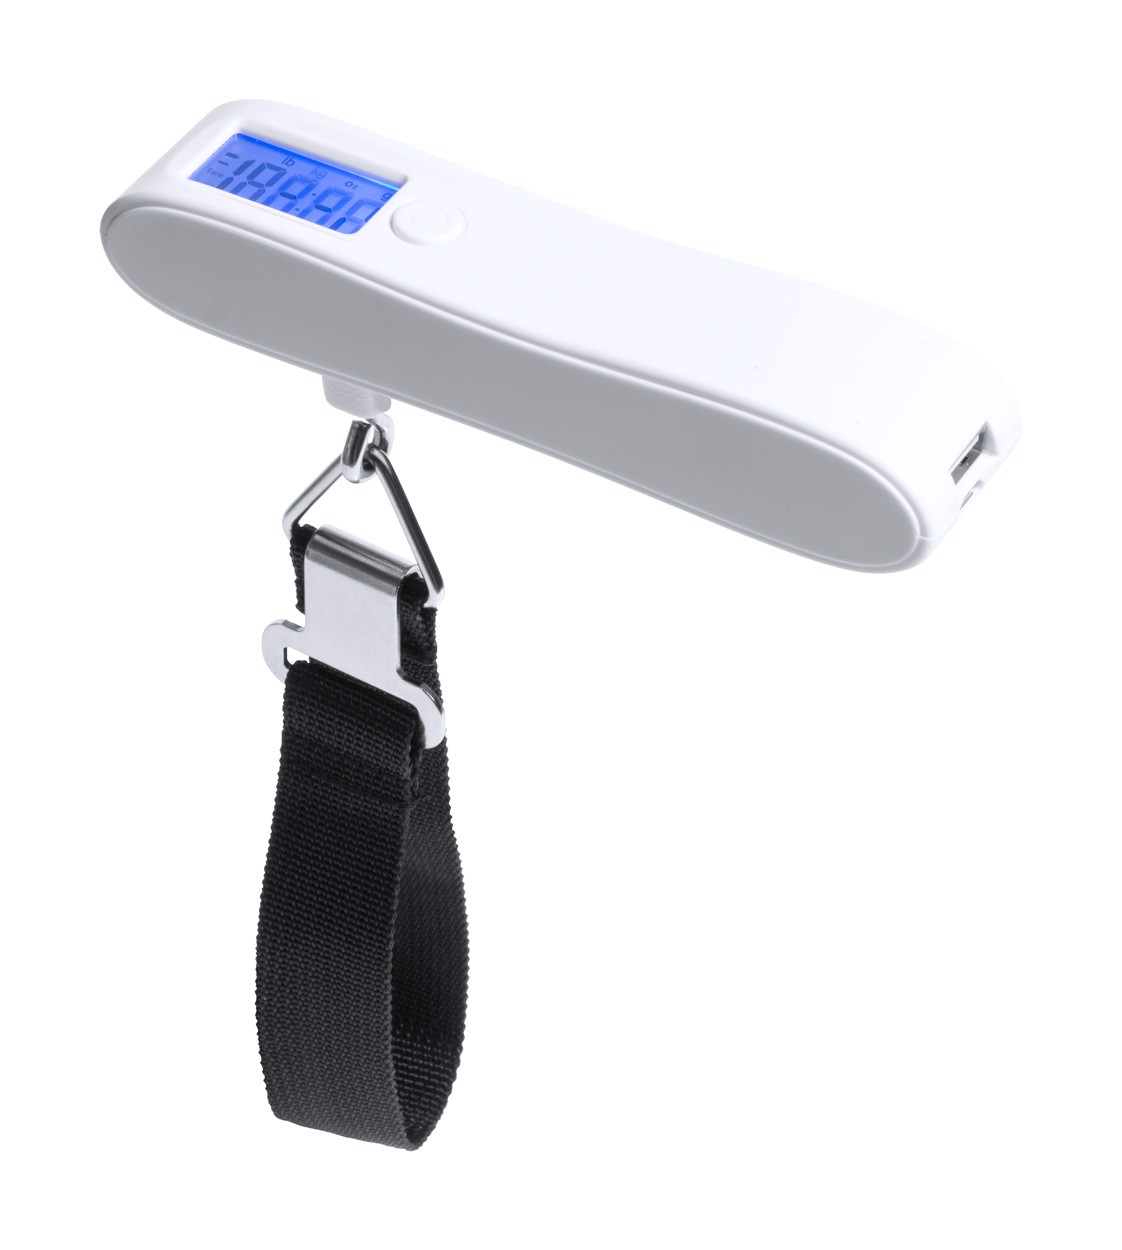 Luggage Scale With Power Bank Hargol - White